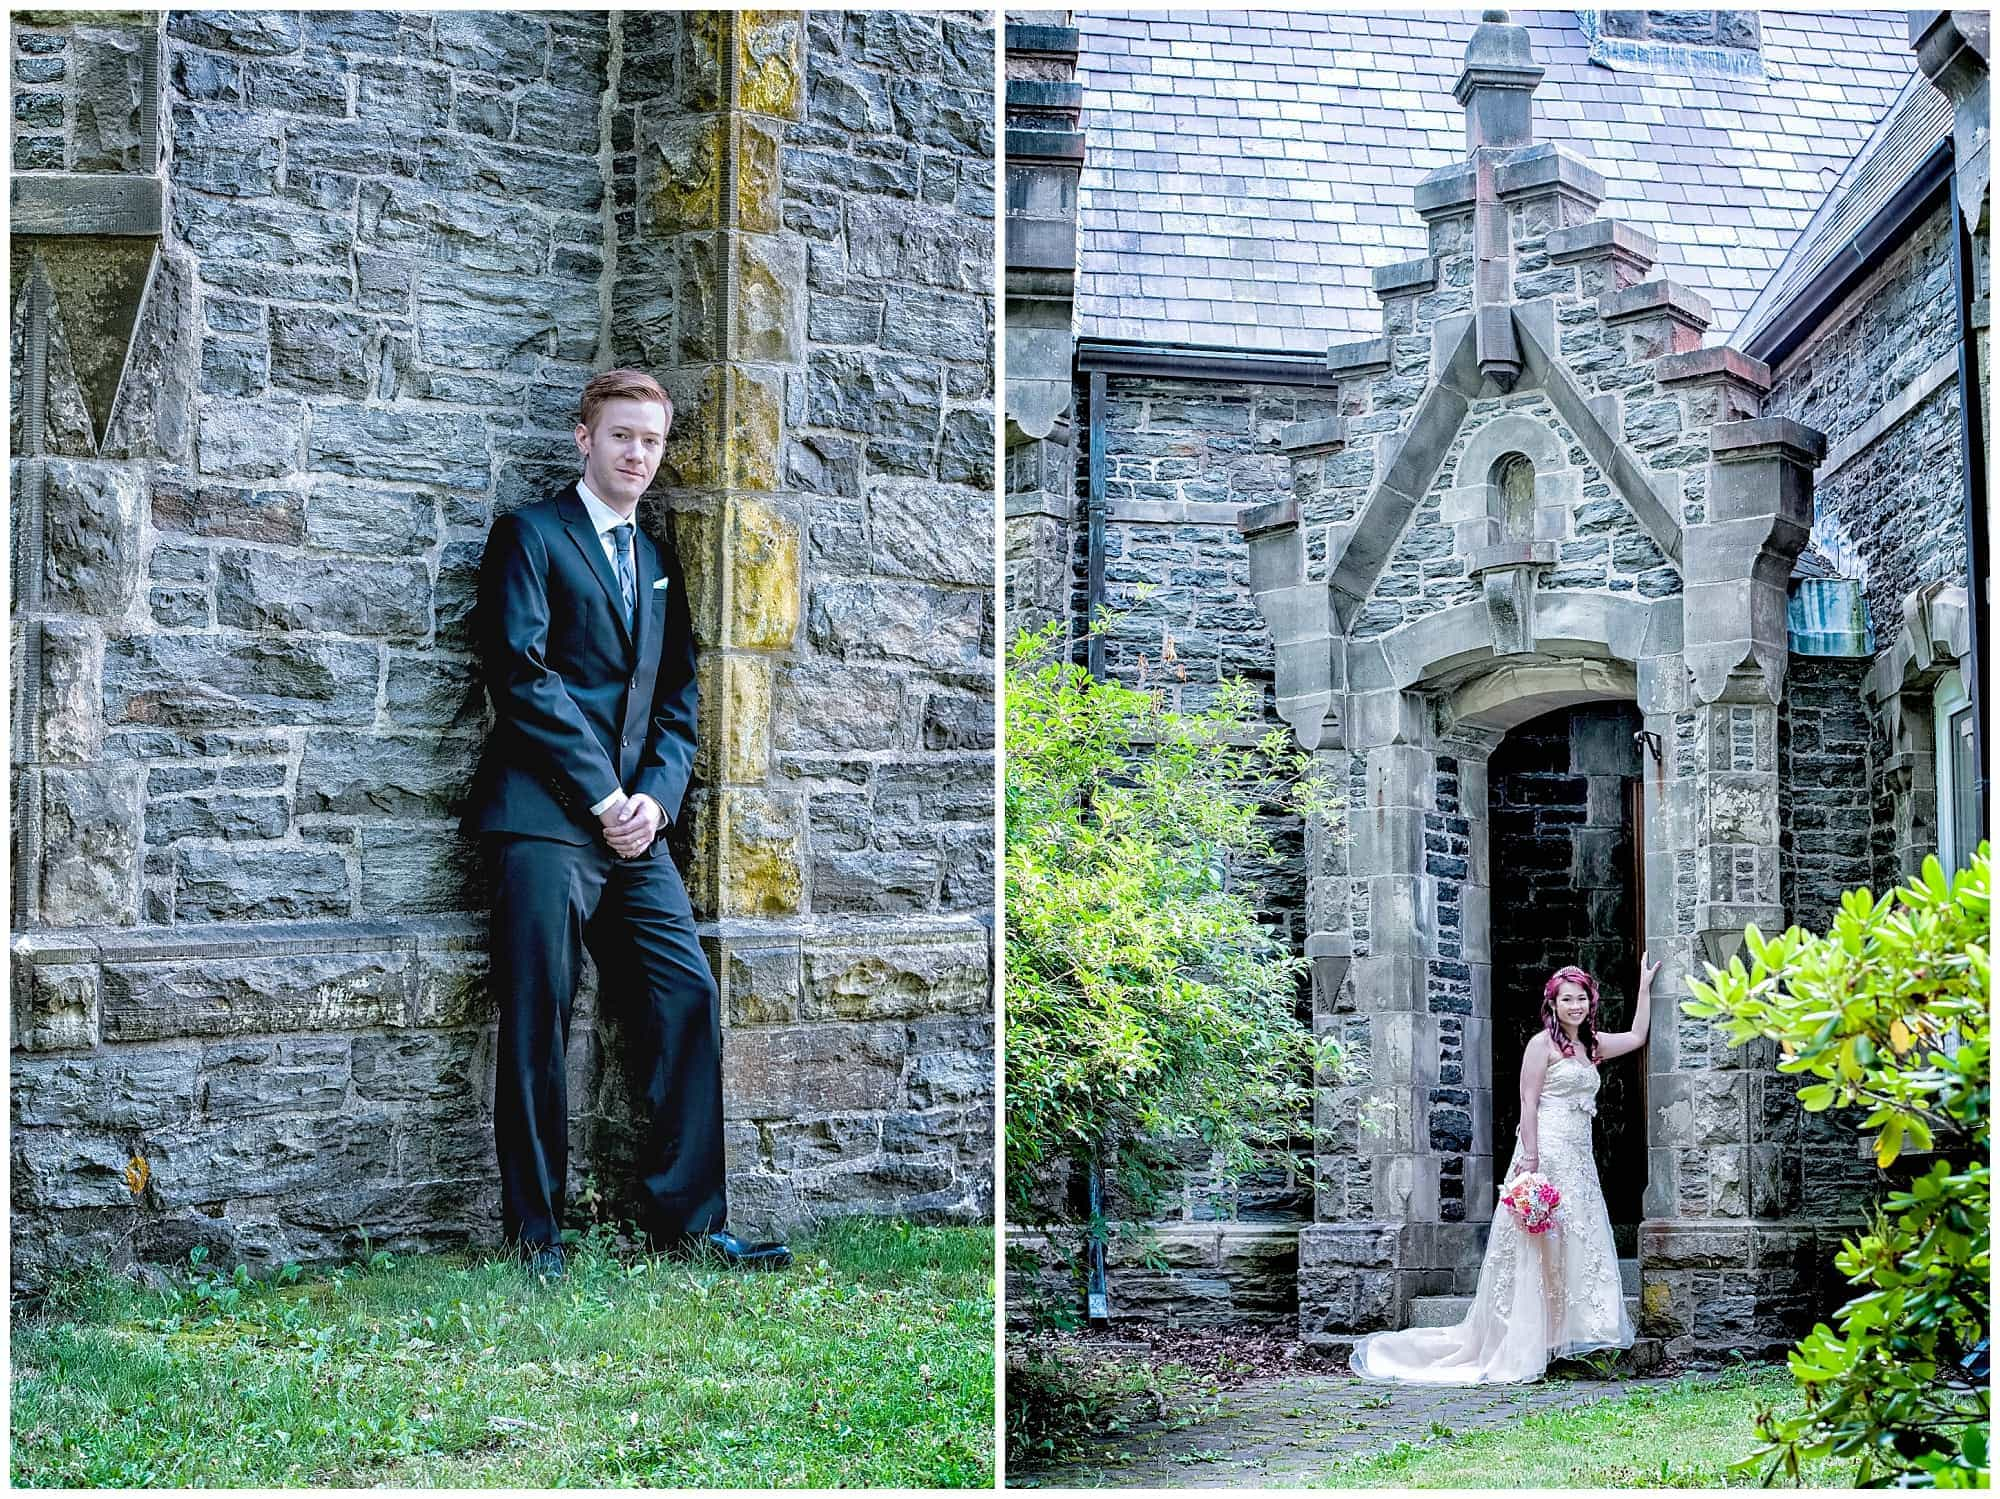 The bride and groom had their wedding photos done at the Gatehouse in Point Pleasant Park in Halifax, NS.